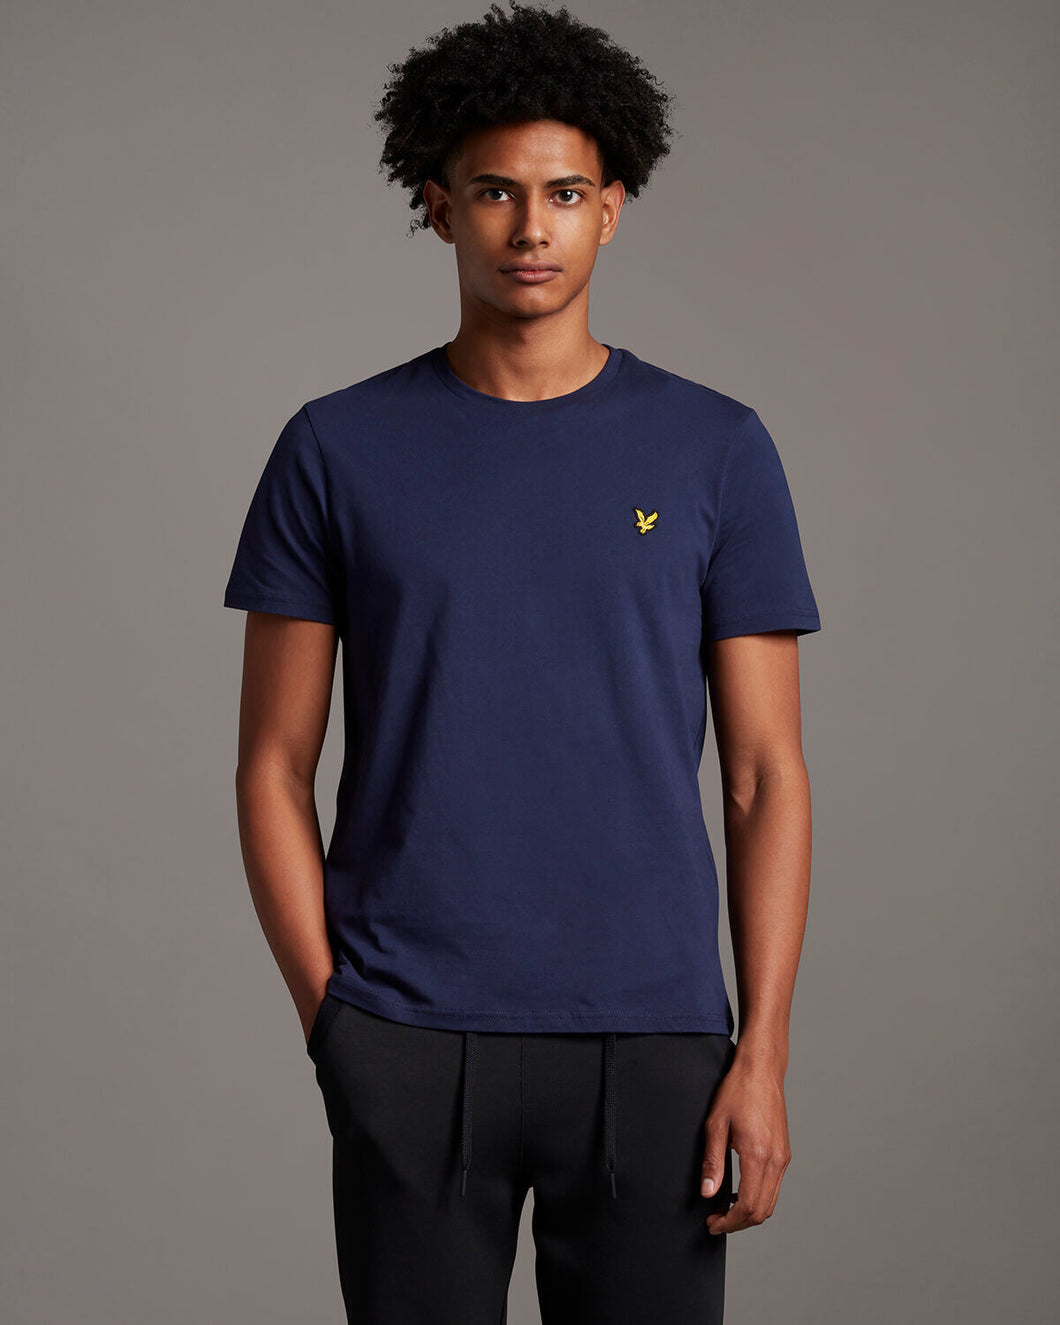 Lyle & Scott Navy Plain T-Shirt - TS400V - Z99